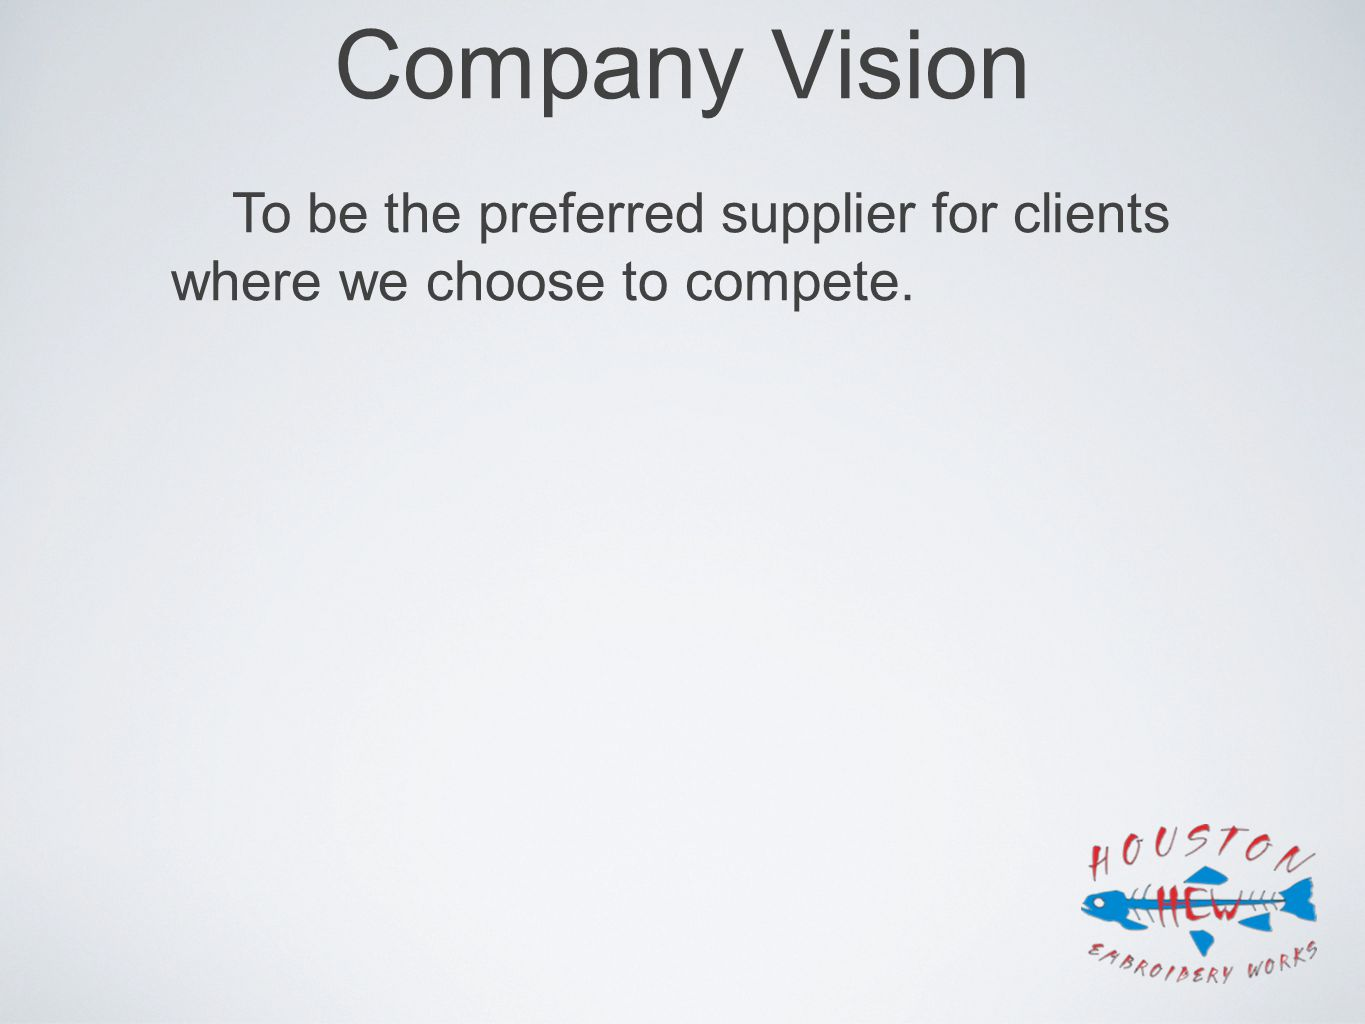 Company Vision To be the preferred supplier for clients where we choose to compete.